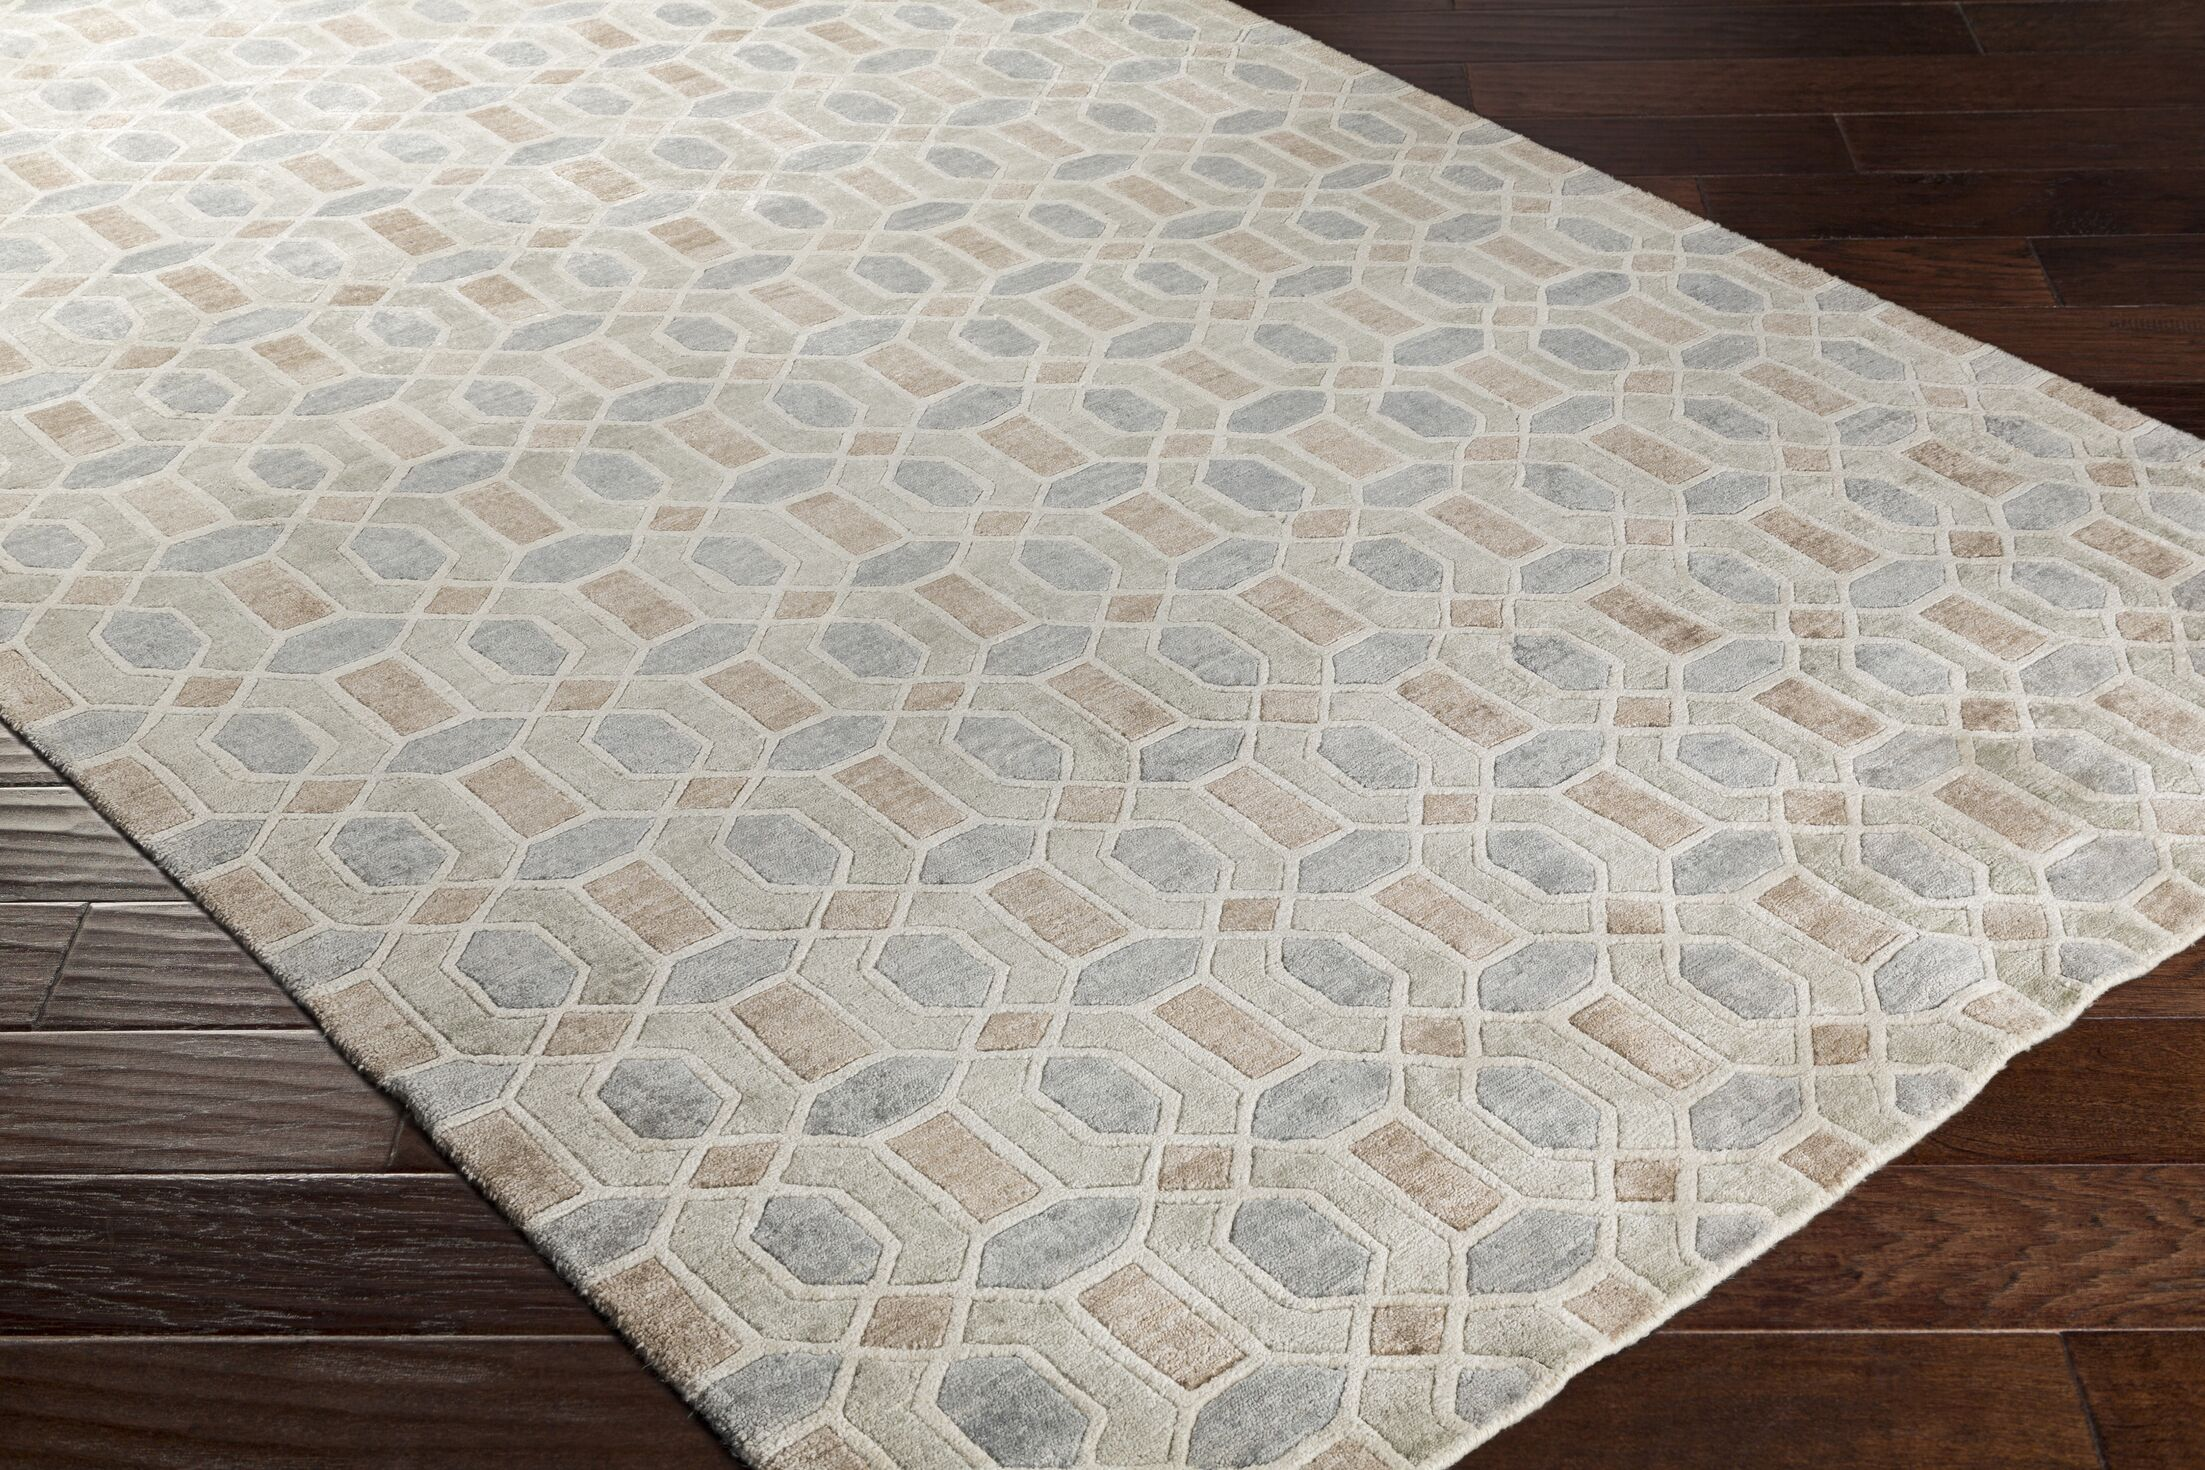 Arline Hand-Knotted Beige/Gray Area Rug Rug Size: Rectangle 2' x 3'